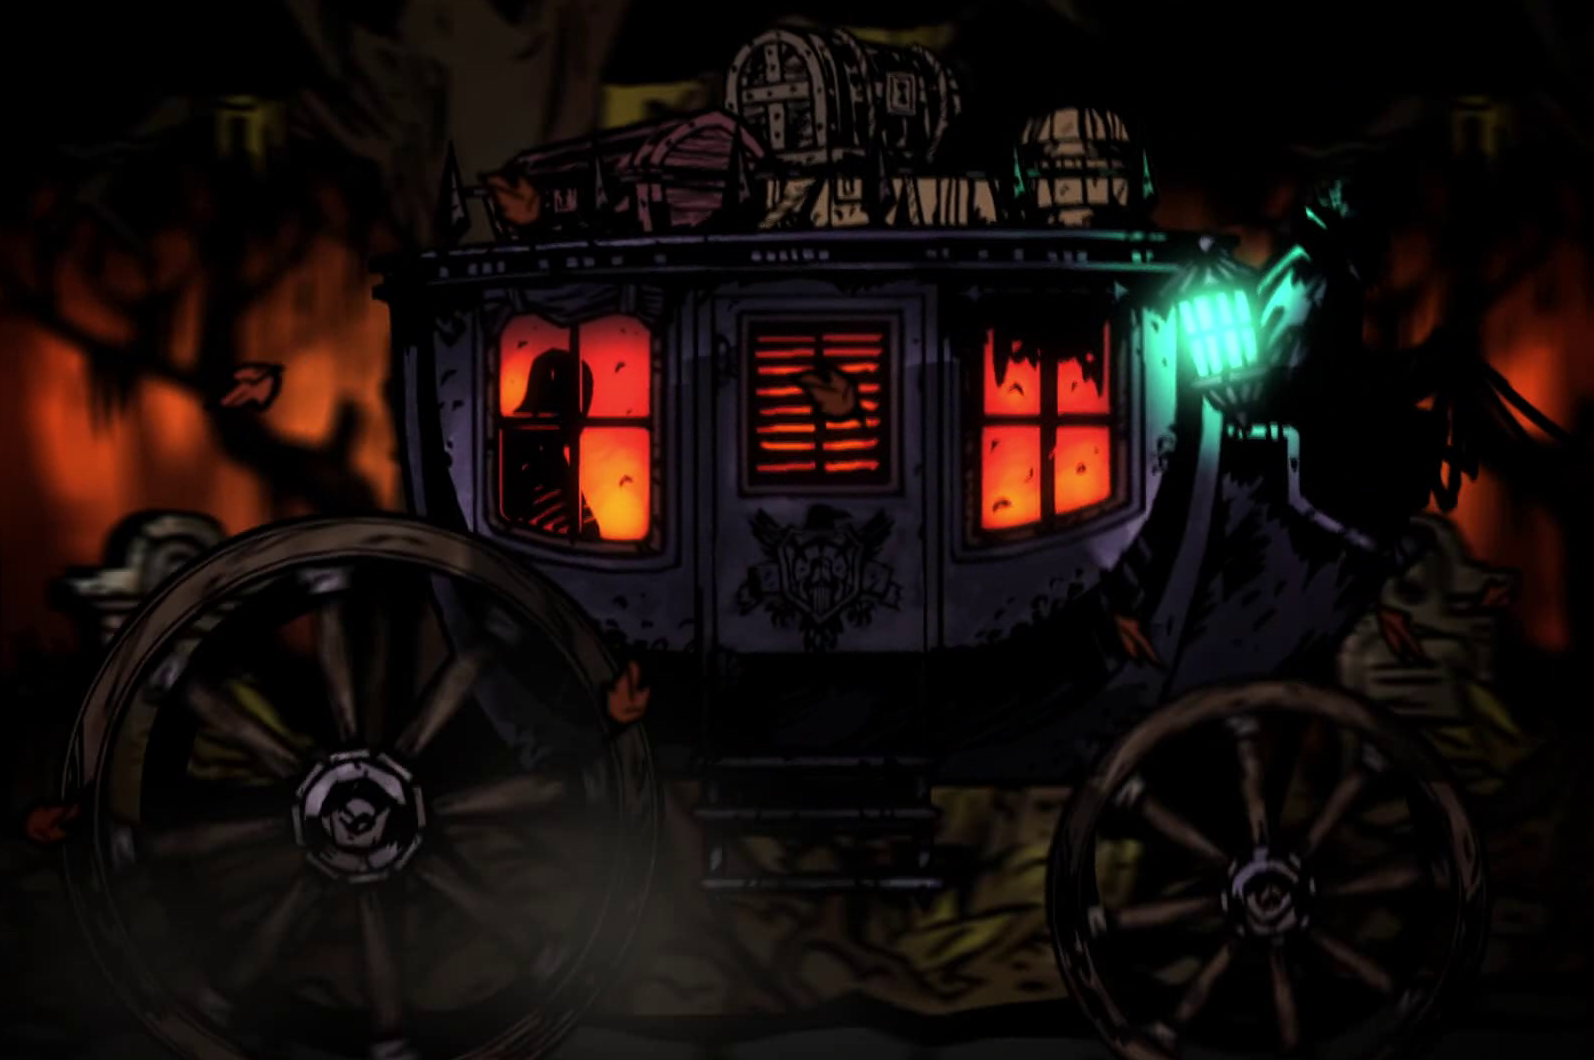 darkest dungeon characters tv tropes